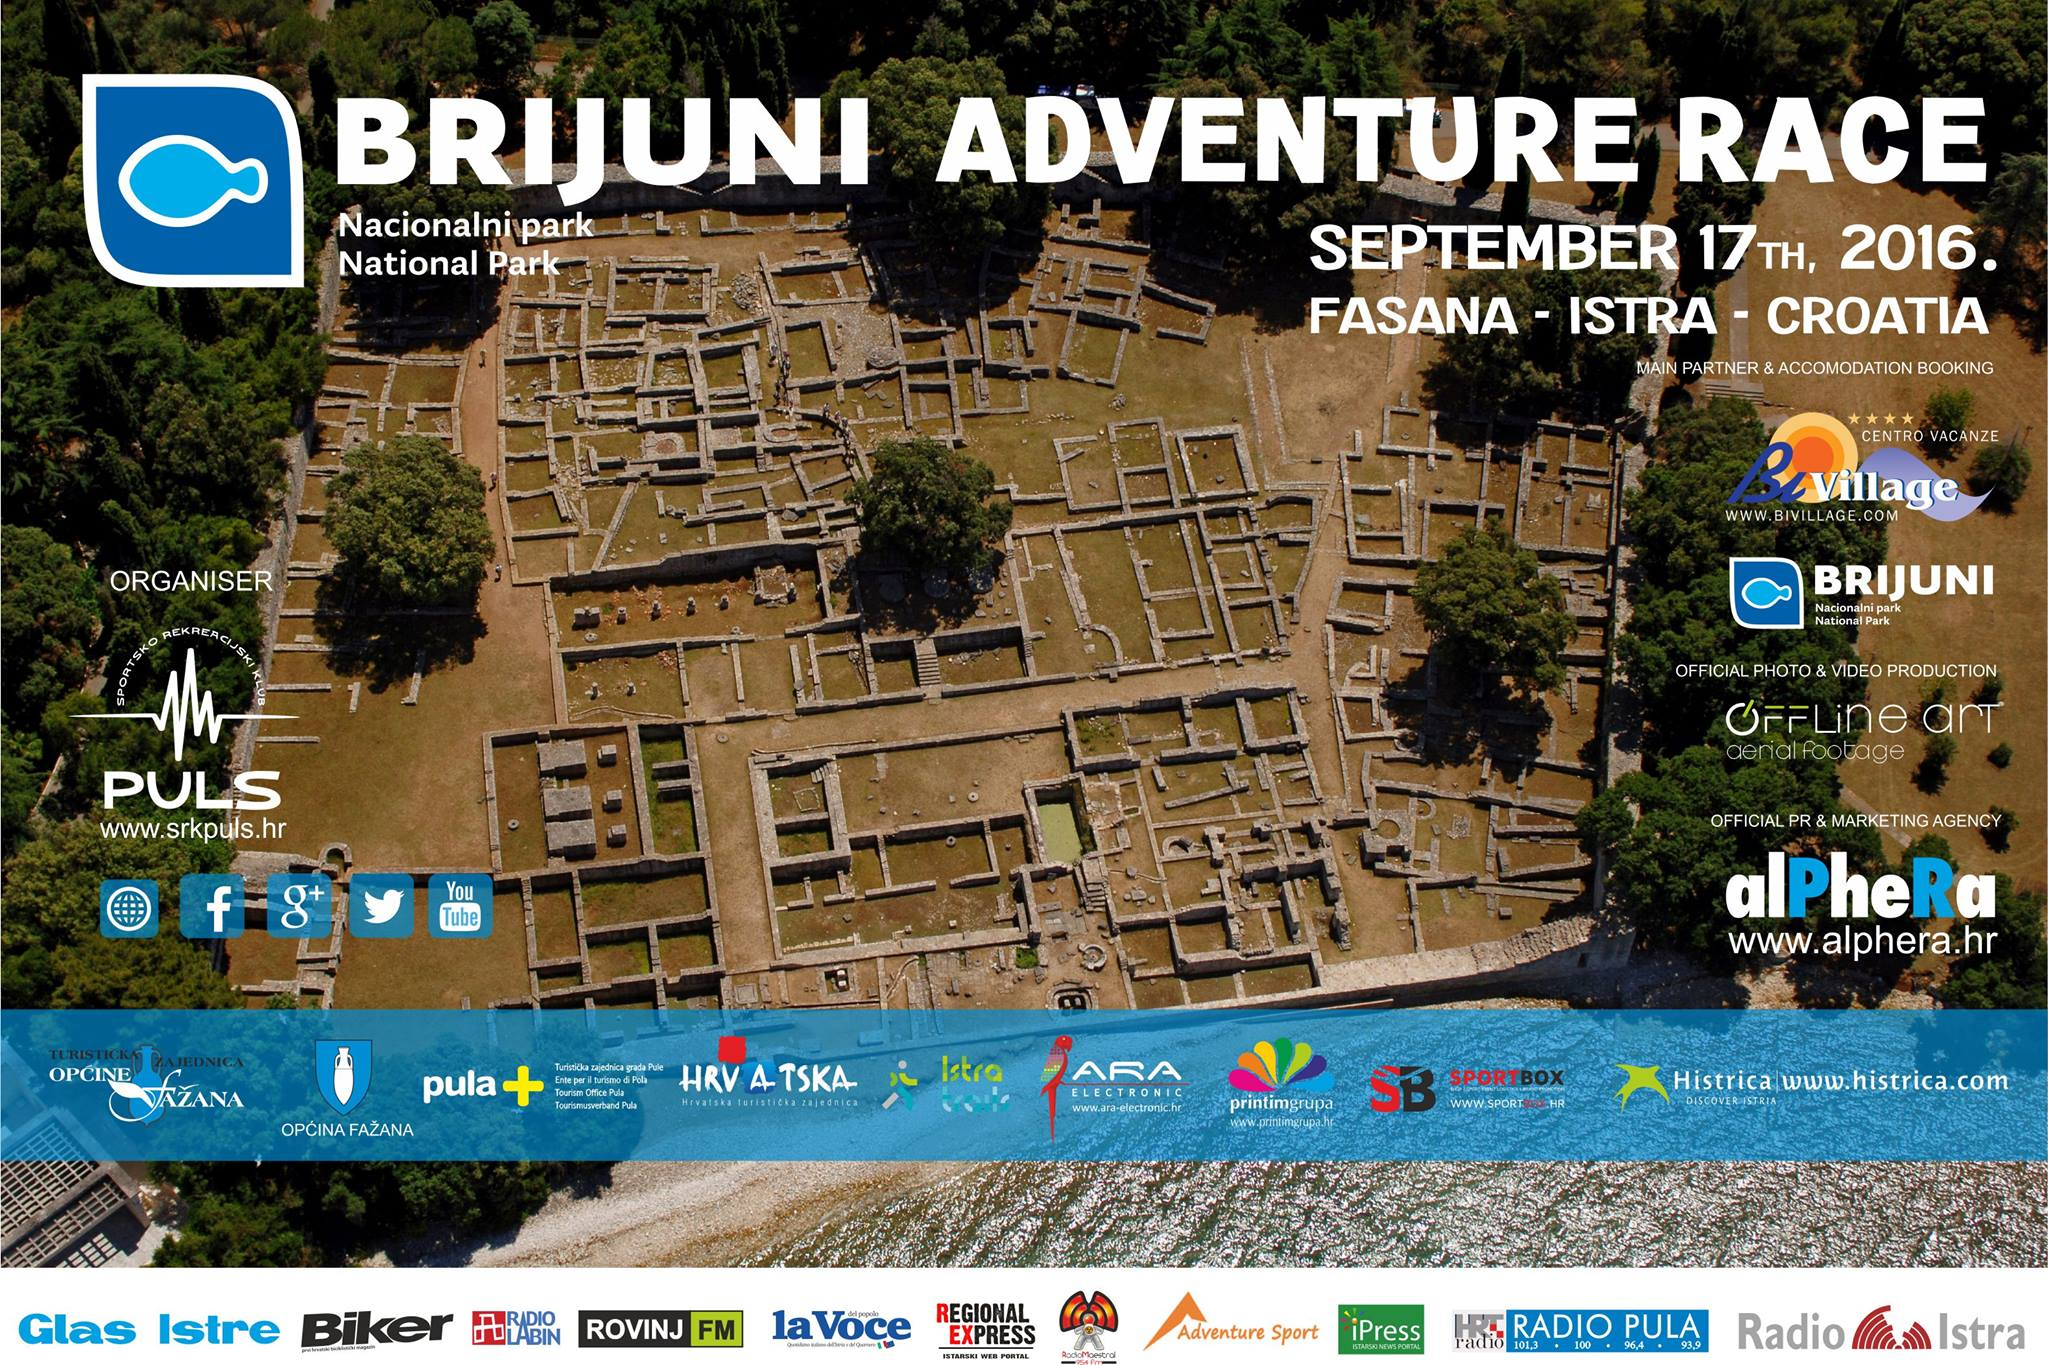 Brijuni adventure Race